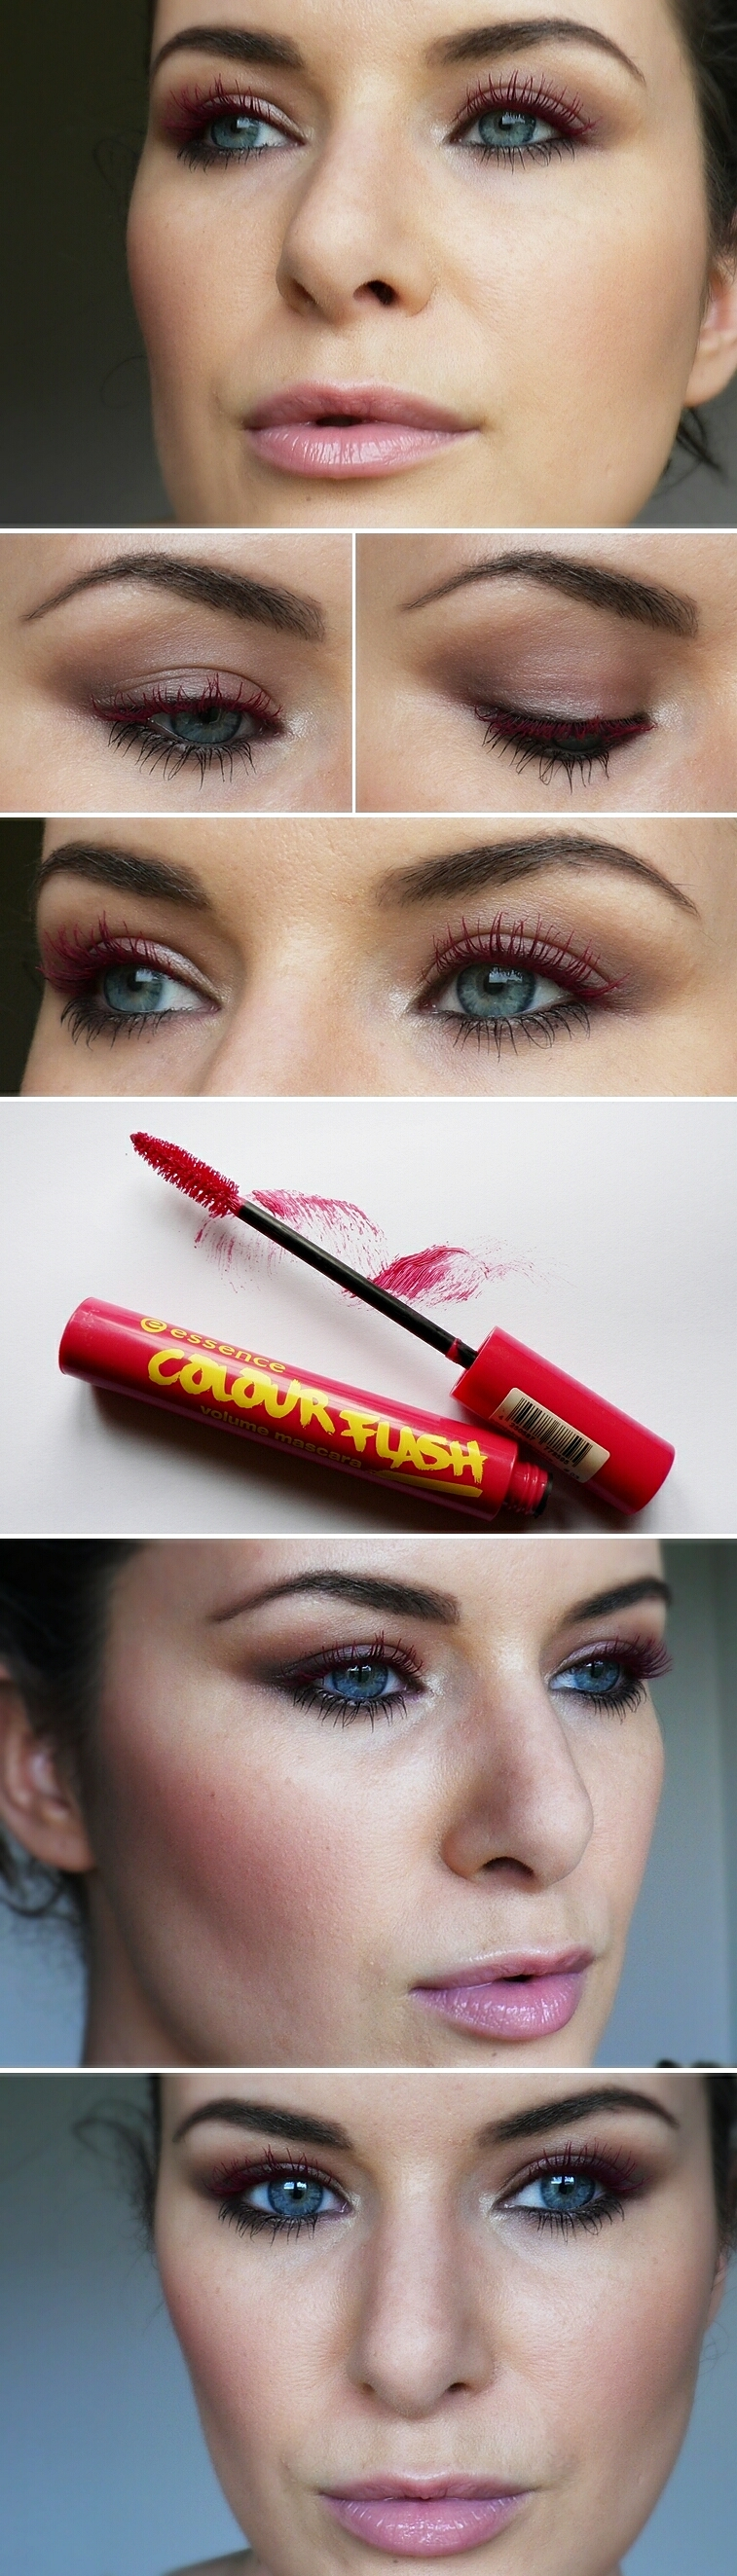 red-mascara-essence-redmascaramakeuplook